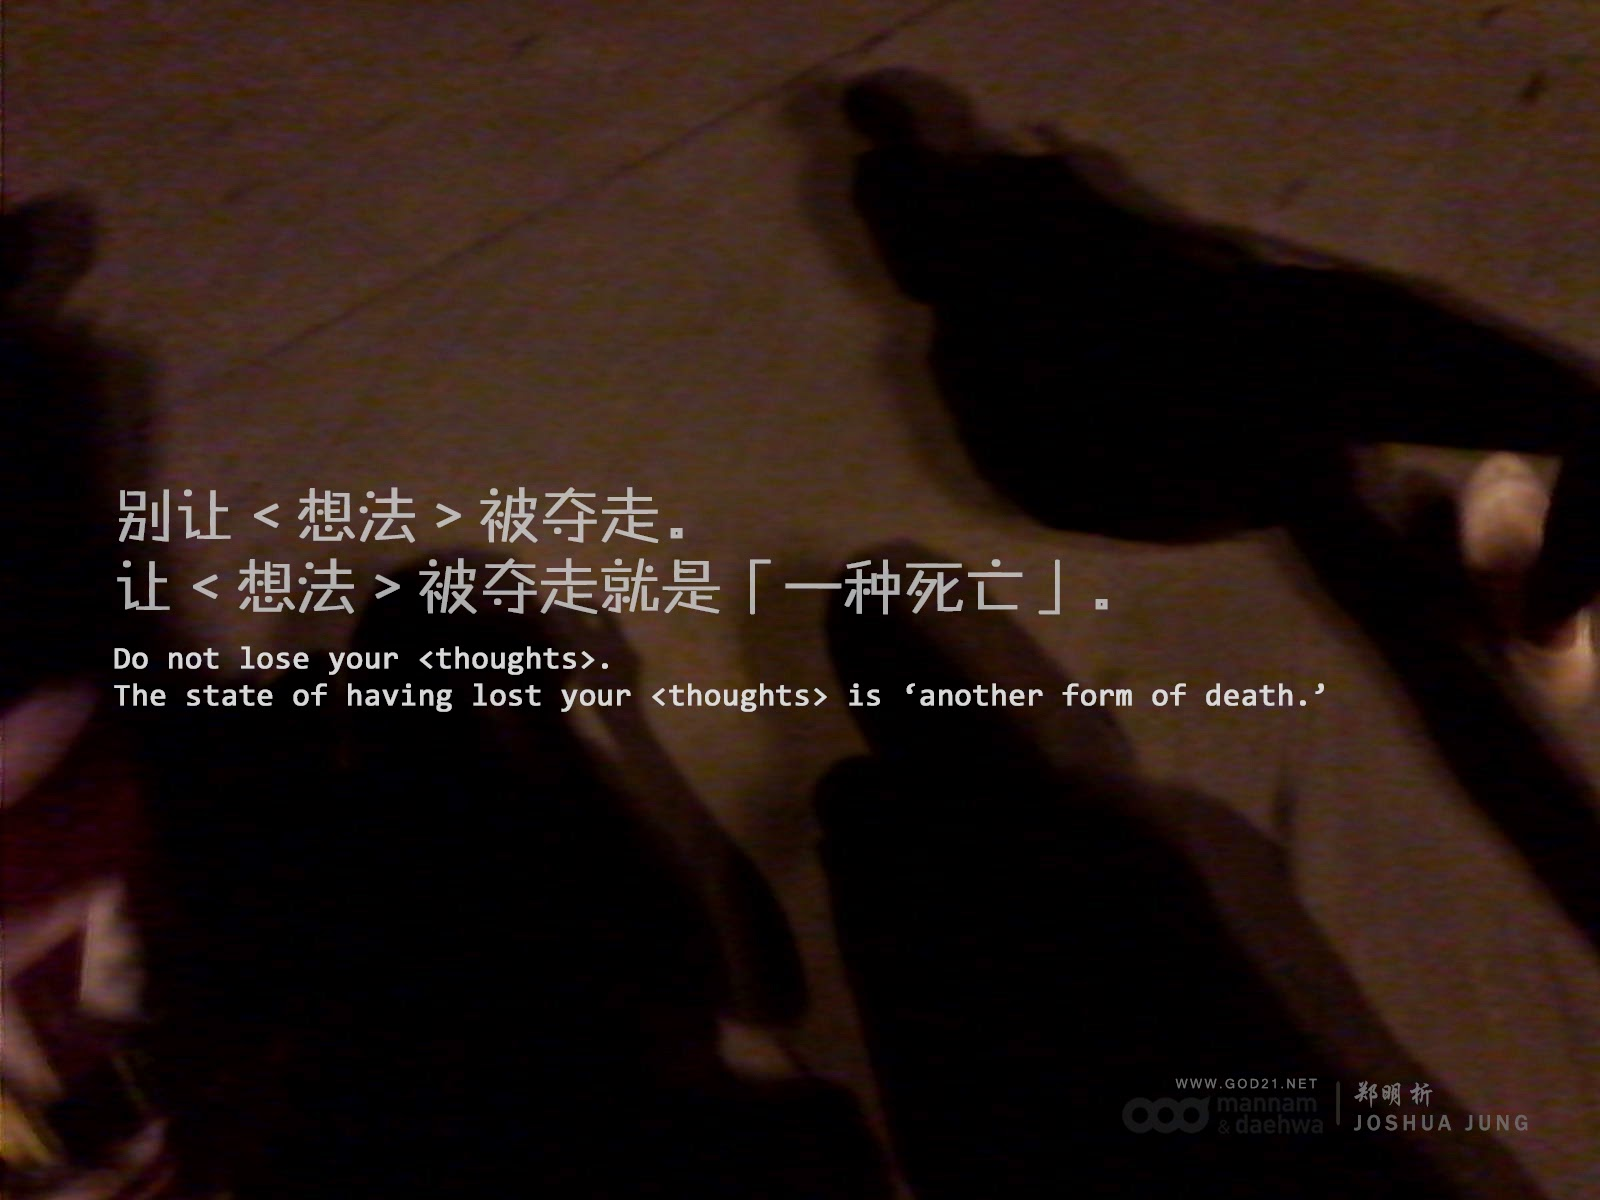 郑明析,摄理教会,月明洞,想法,死亡,影子,夜晚,Joshua Jung, Providence, Wolmyeong Dong, Thought, death, shadow, night